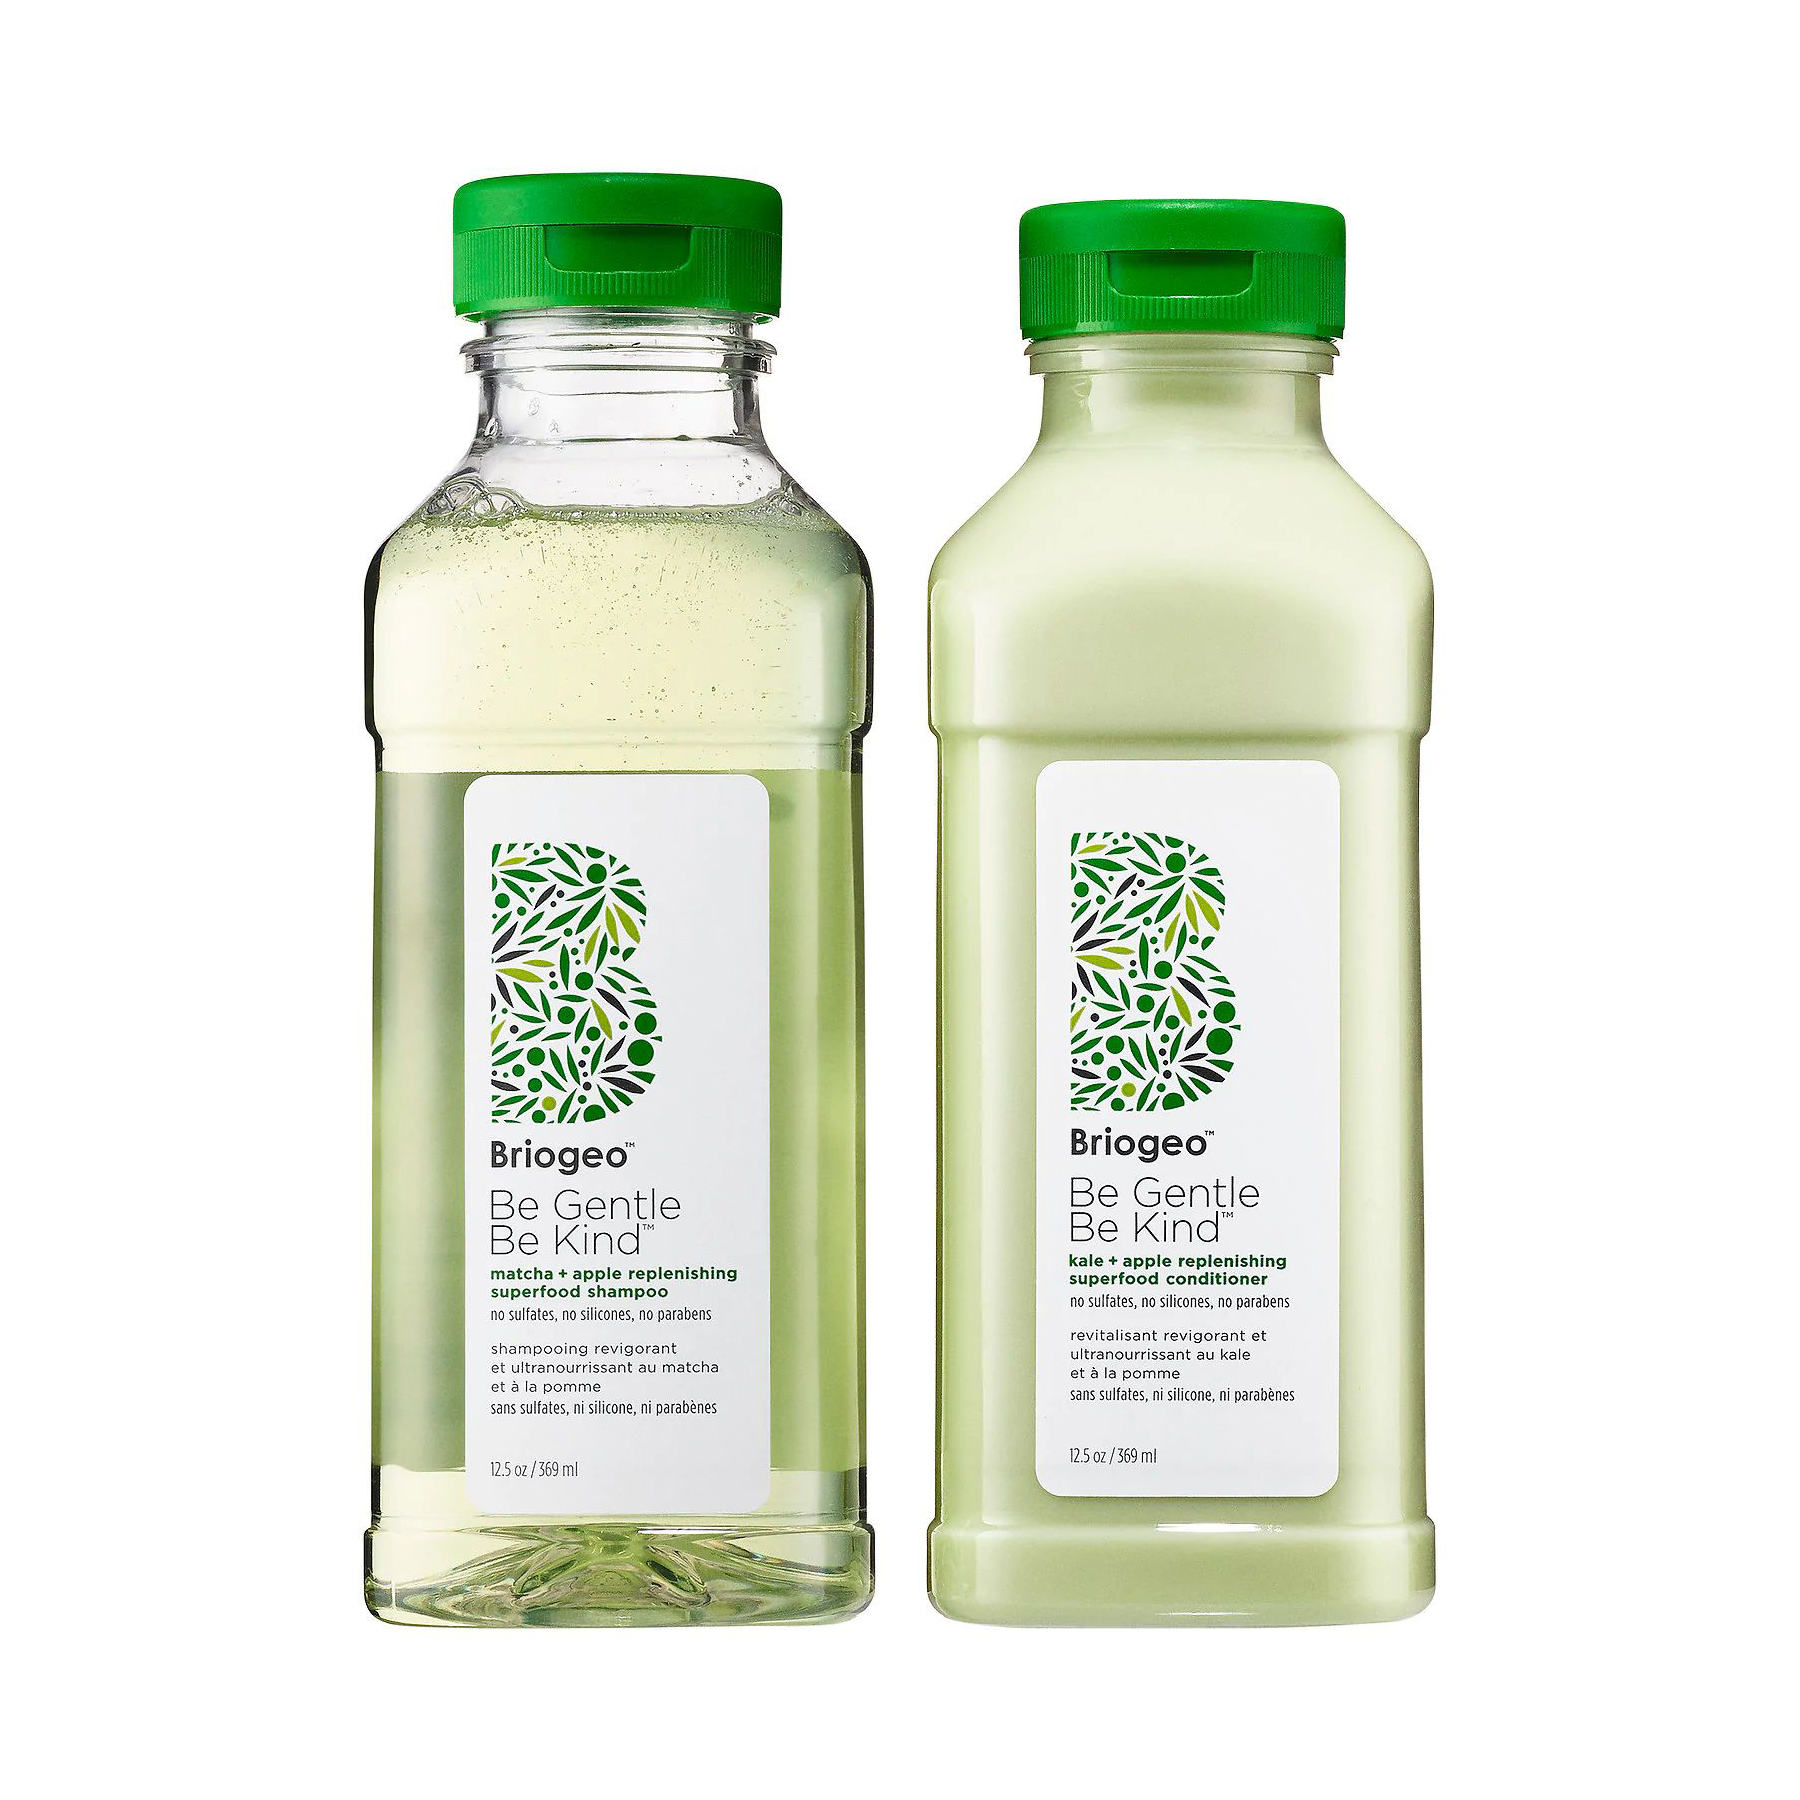 Briogeo Be Gentle Be Kind Superfoods Shampoo Conditioner Hair Pack